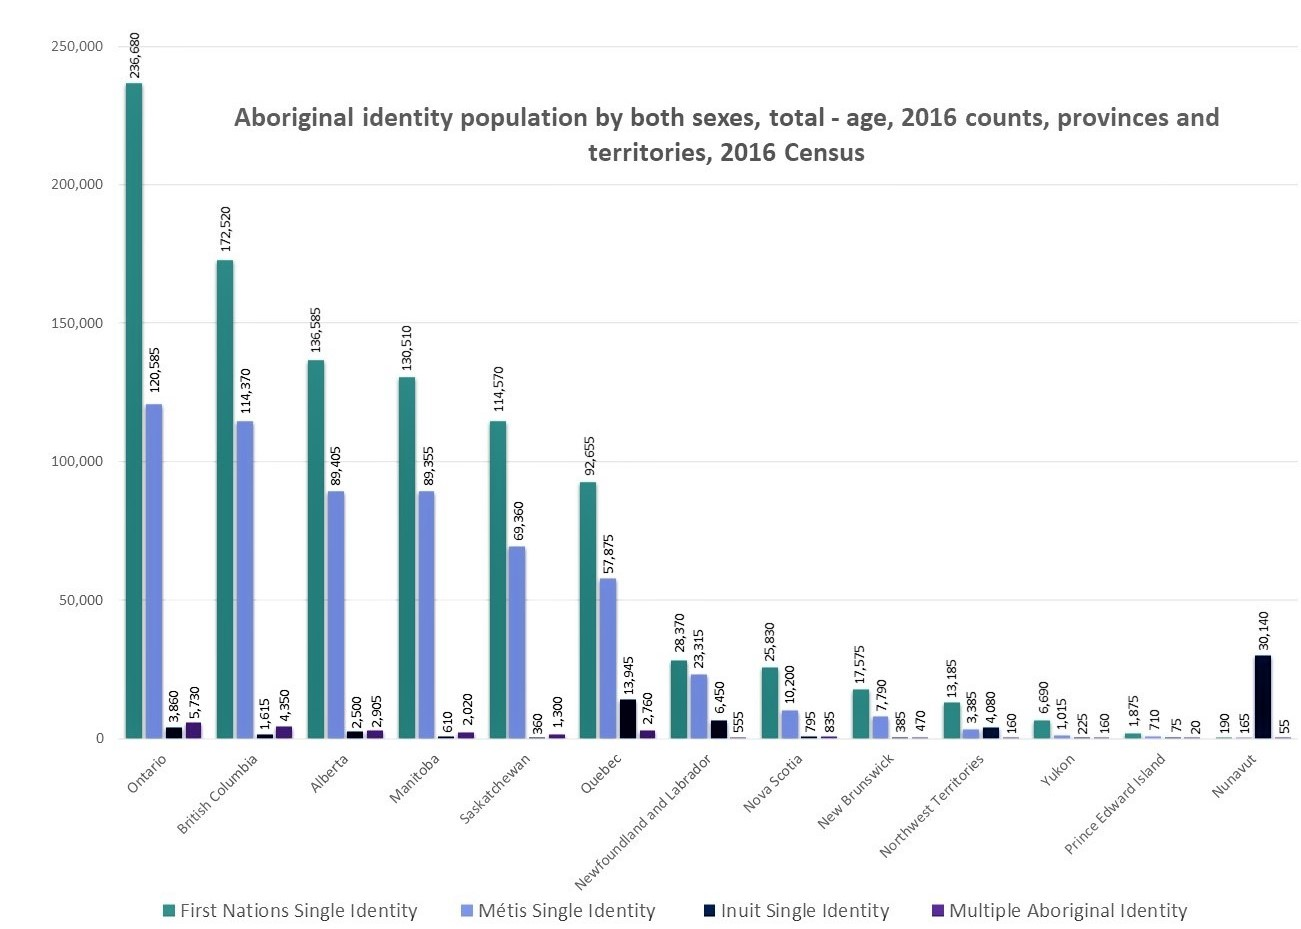 Aboriginal identity population by both sexes, total - age, 2016 counts, provinces and territories, 2016 Census.Data Source: Statistics Canada (2016) - Aboriginal Peoples Highlight Tables, 2016 Census. Analyzed and graphed by: Pauline Galoustian. [11]